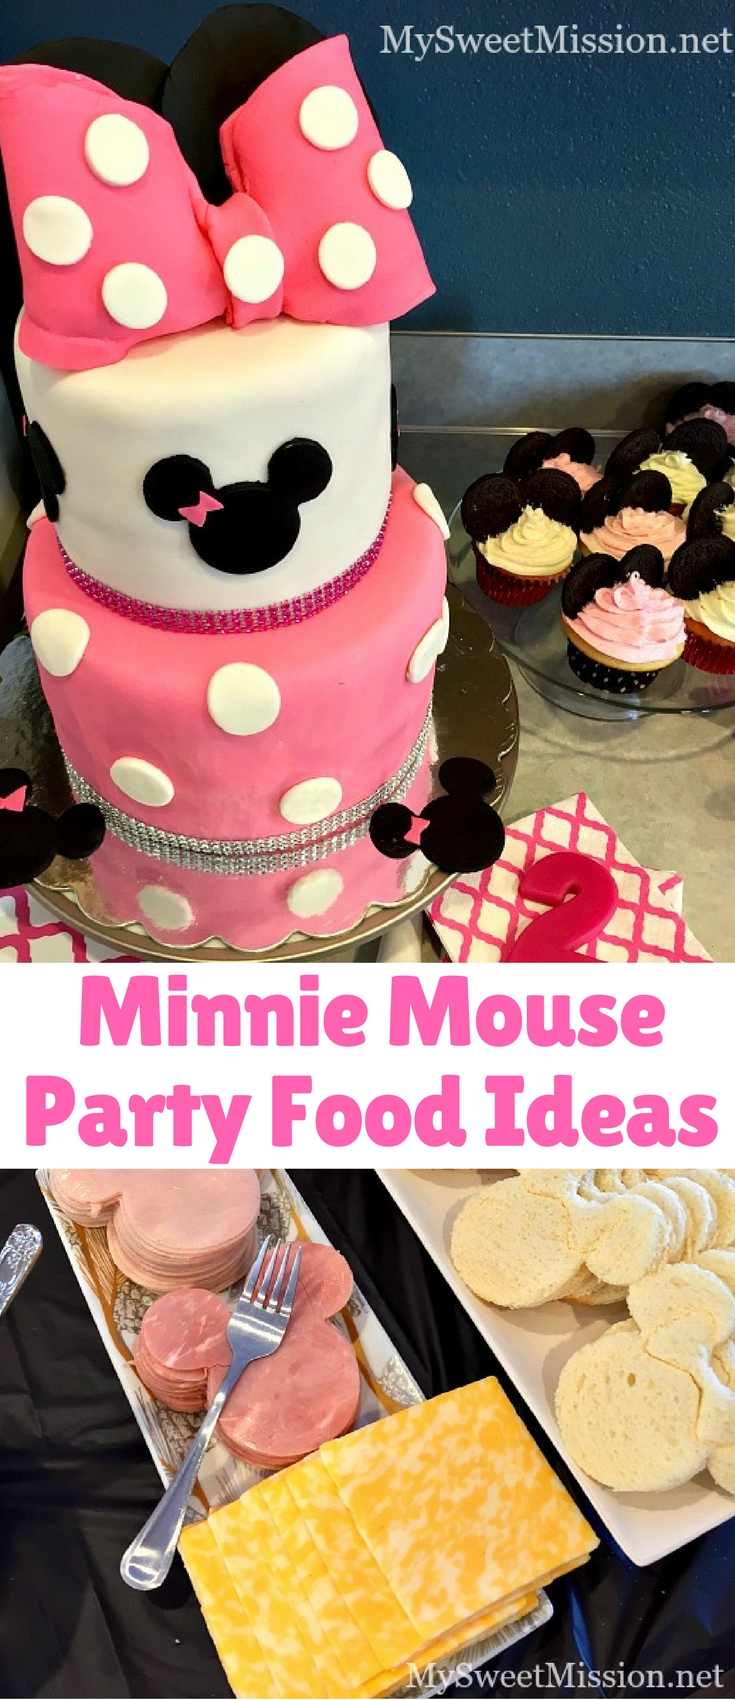 These delicious and adorable Minnie Mouse Party Food Ideas are sure to put a smile on every Mouseketeer's face!